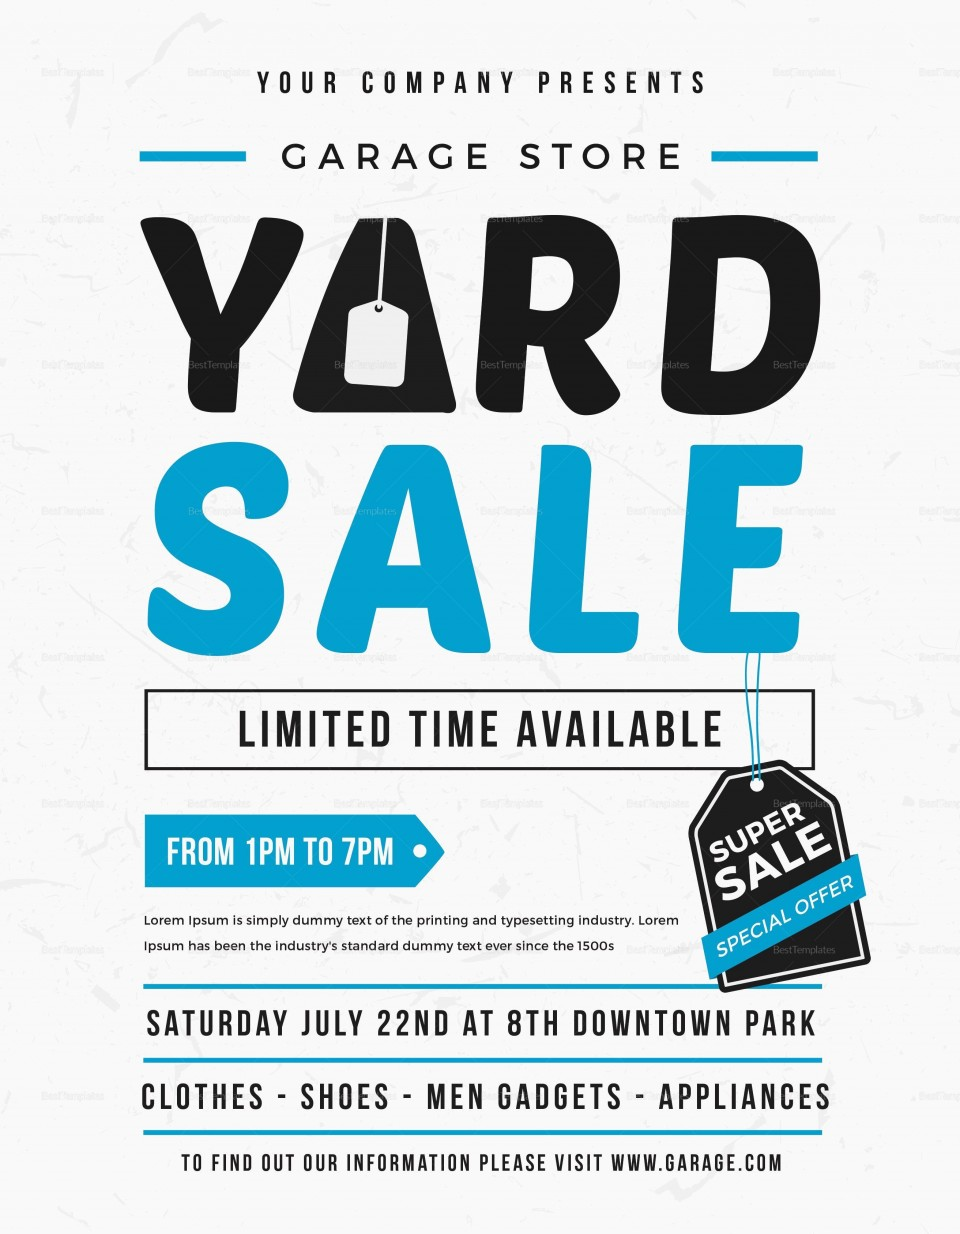 005 Impressive Yard Sale Flyer Template Design  Free Garage Microsoft Word960